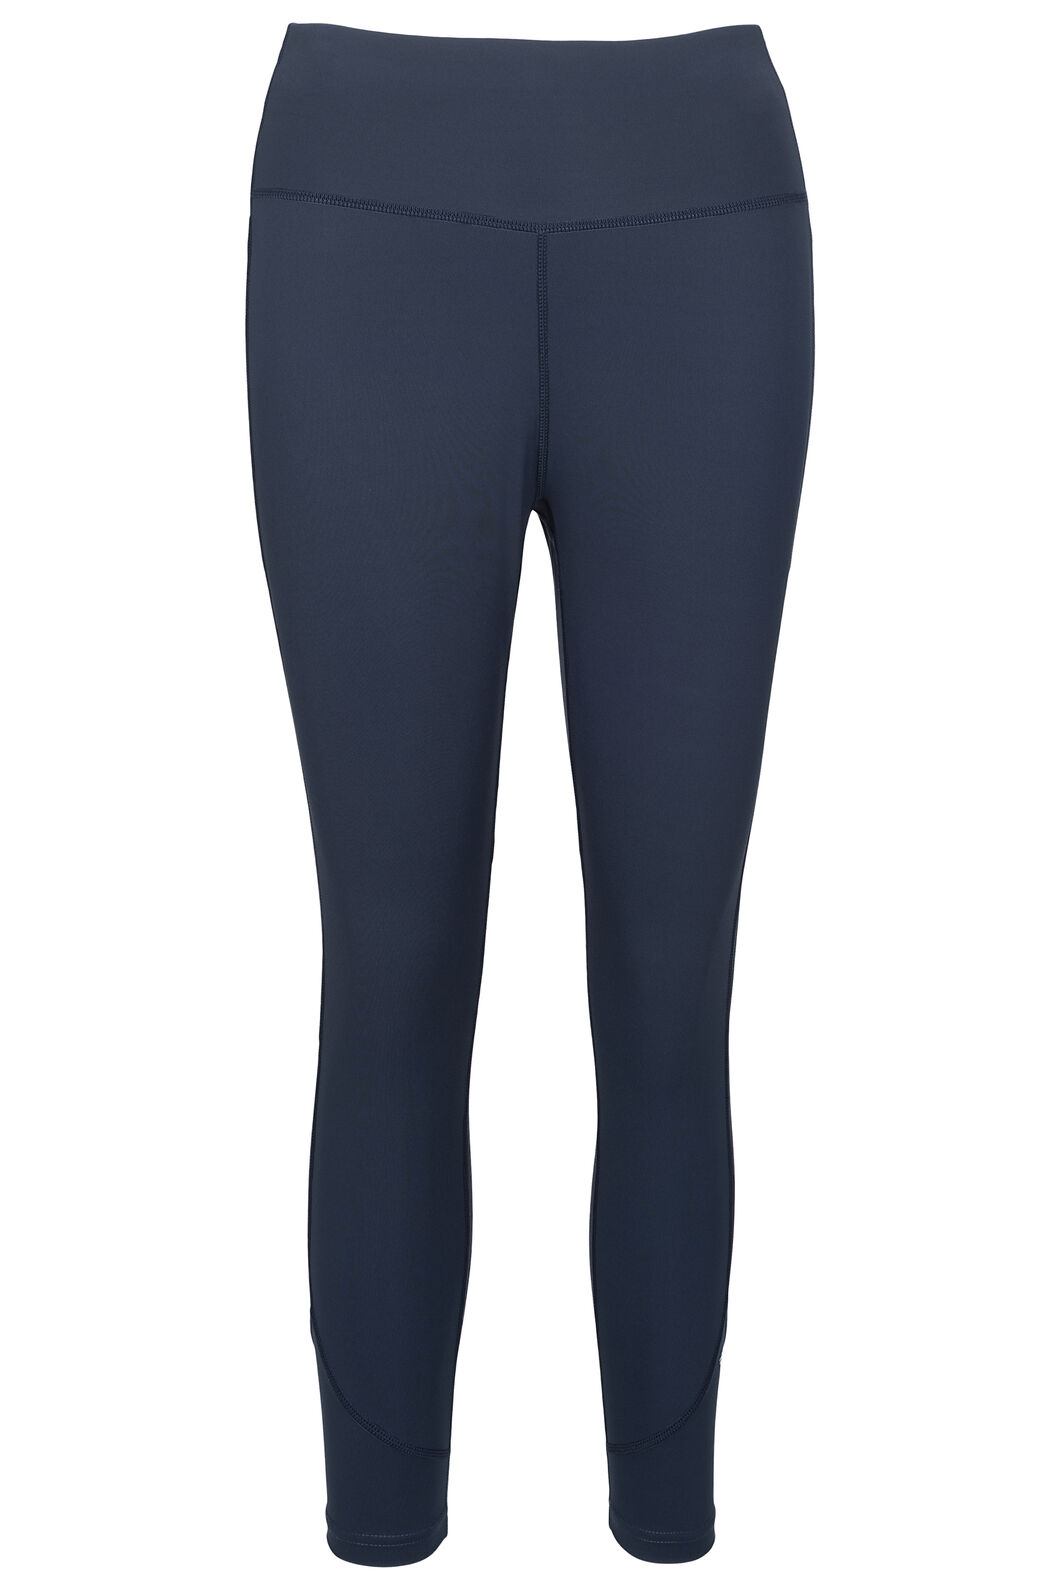 Macpac Caples Running Tights — Women's, Total Eclipse, hi-res